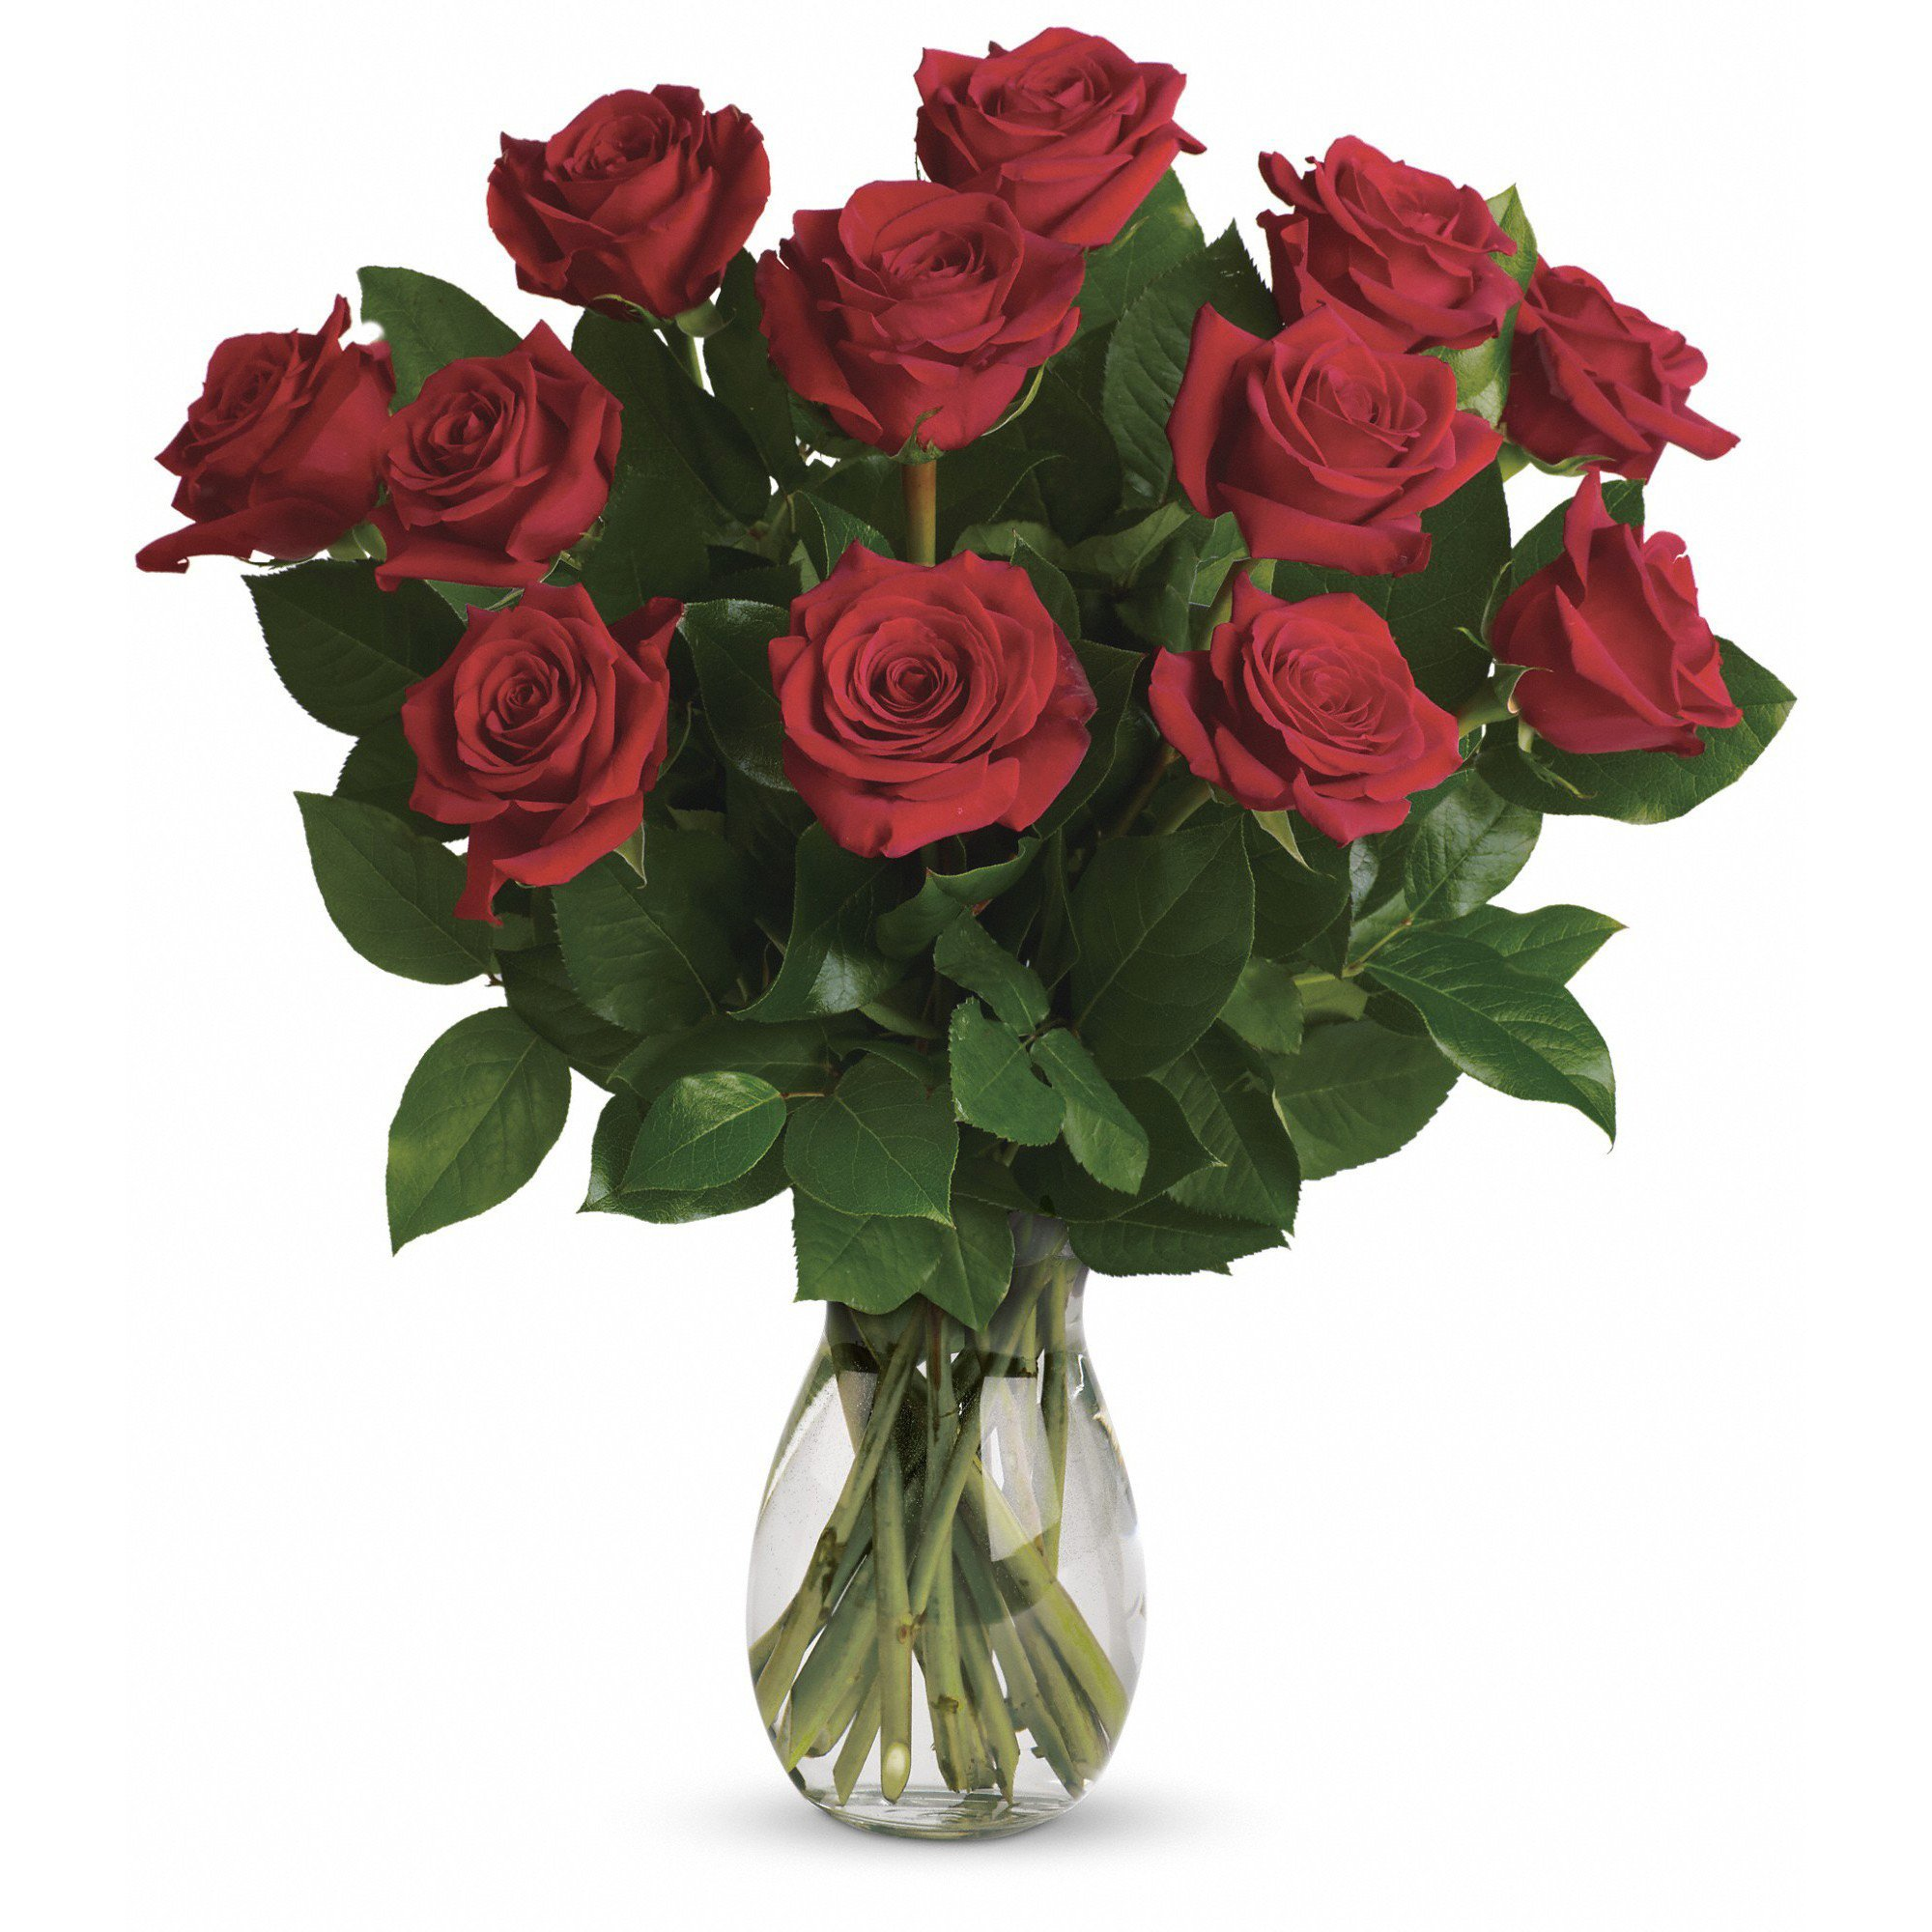 Farm Direct Rose Bouquet of 12 Fresh Cut Roses with Vase (Red)